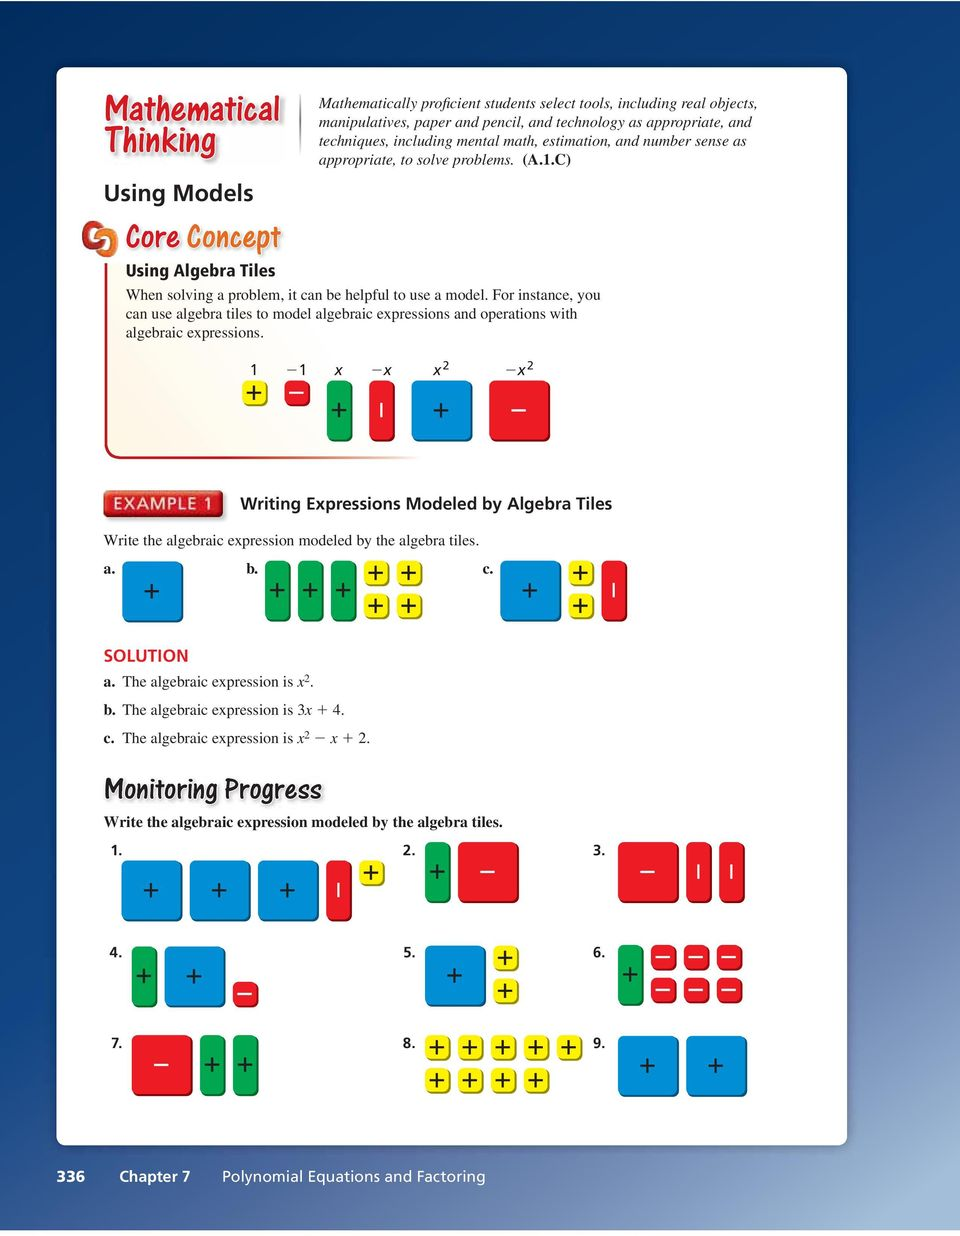 For instance, you can use algebra tiles to model algebraic expressions and operations with algebraic expressions.